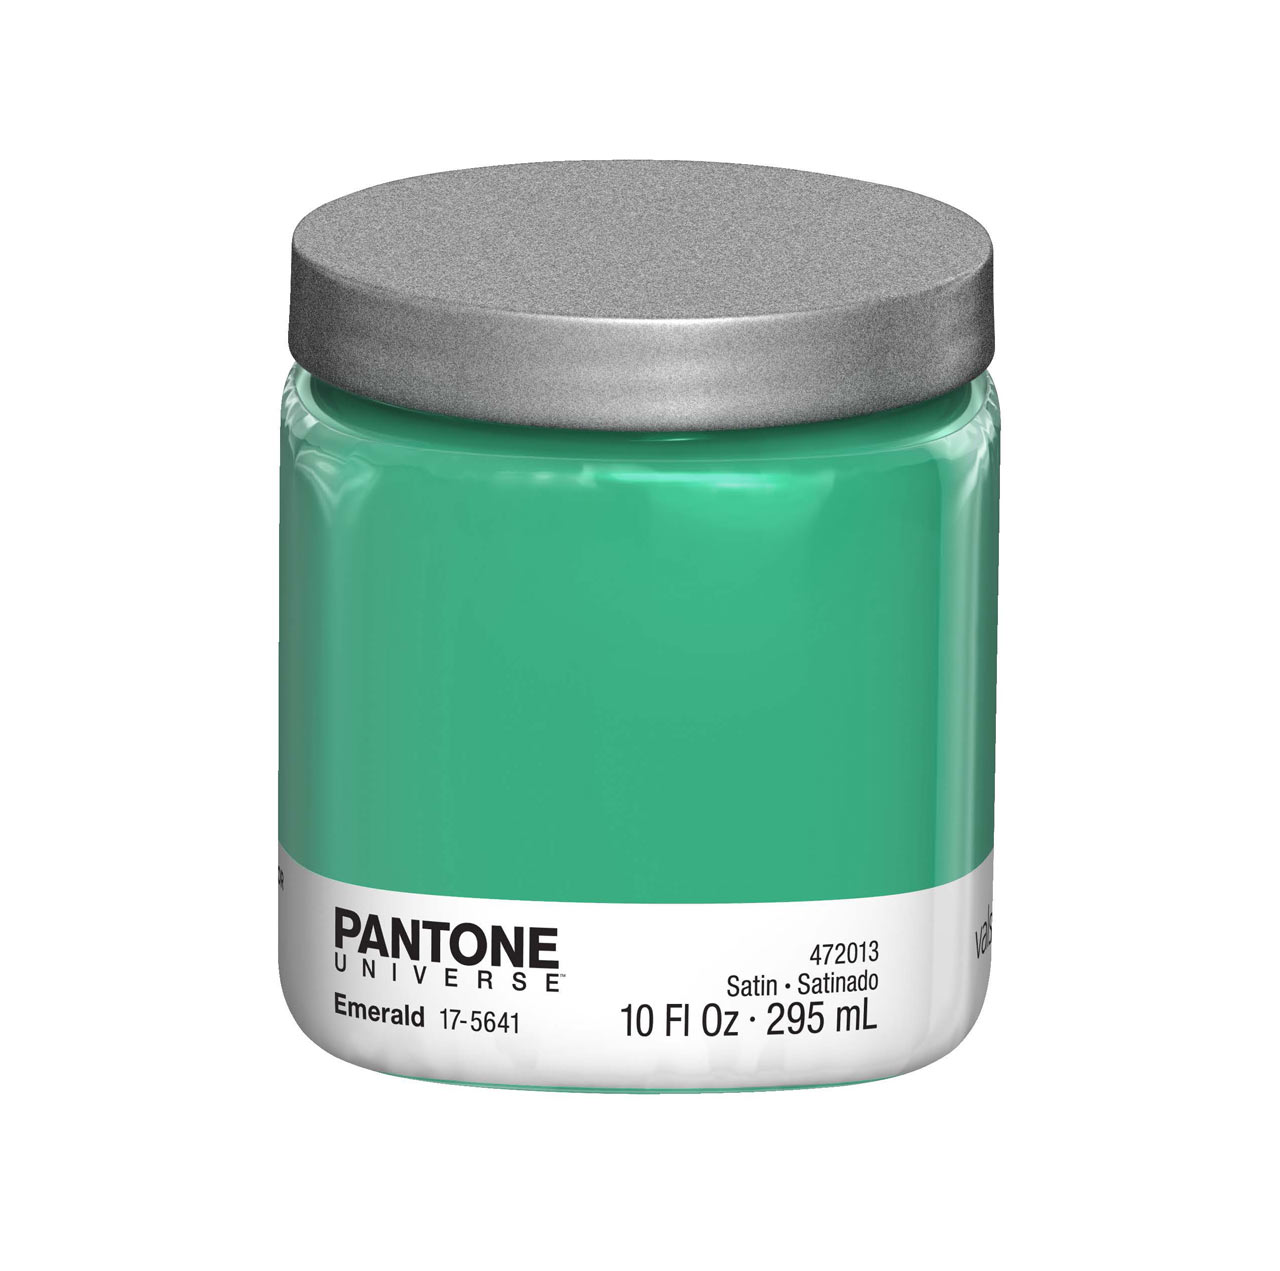 PANTONE UNIVERSE Paint Collection by Valspar